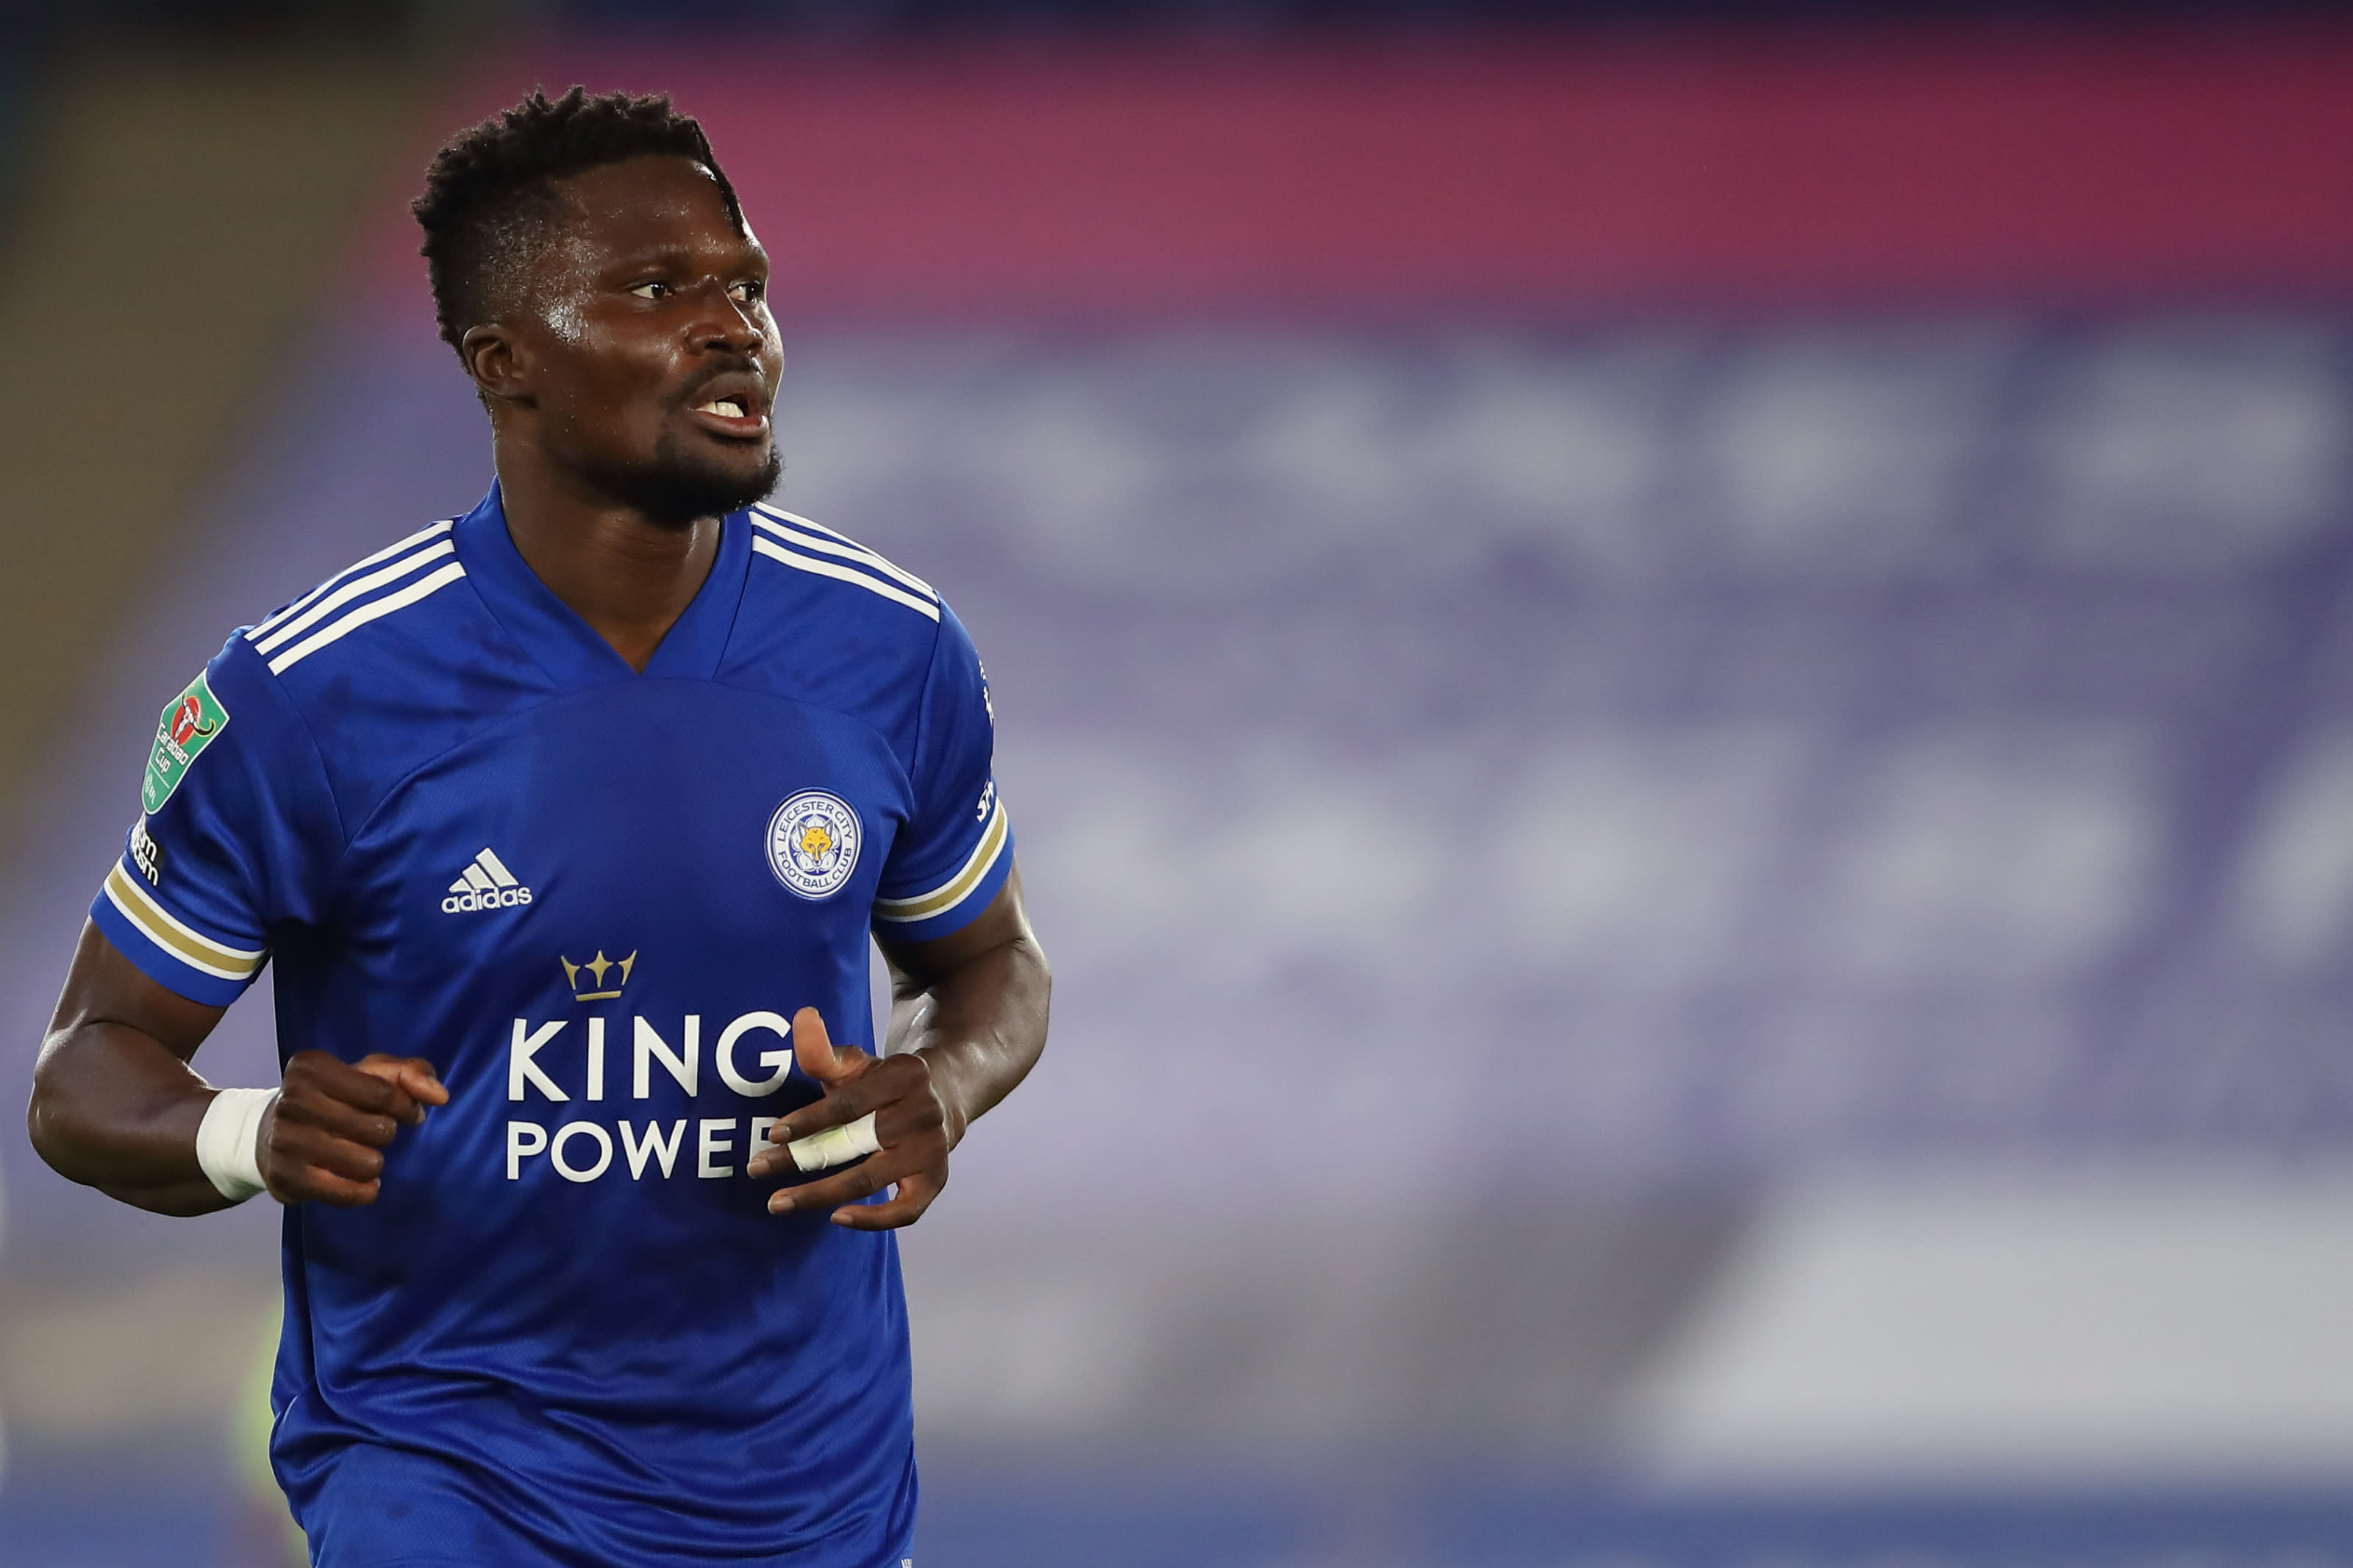 Leicester City defender will be assessed after suffering injury